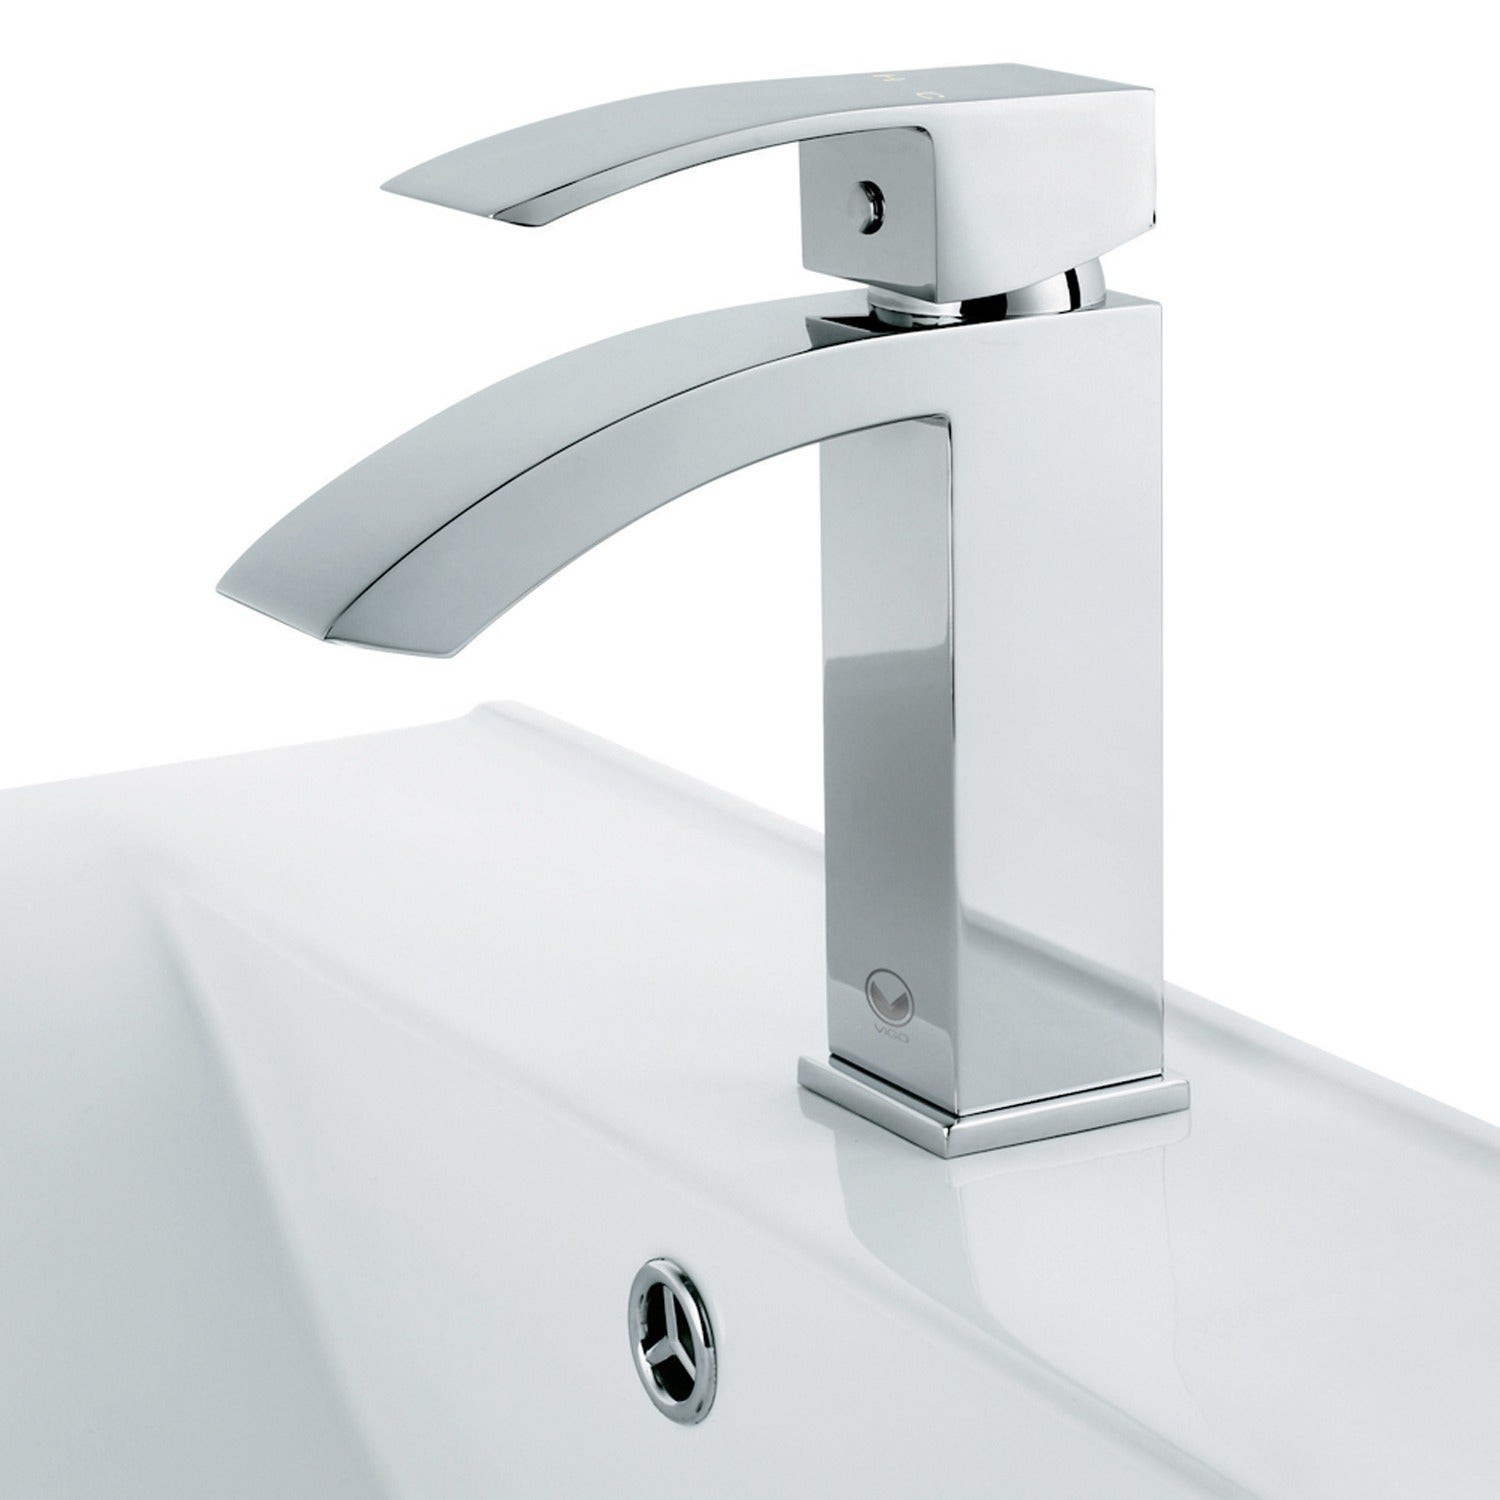 vigo bathroom faucets. VIGO Satro Single Hole Bathroom Faucet In Chrome Vigo Faucets L